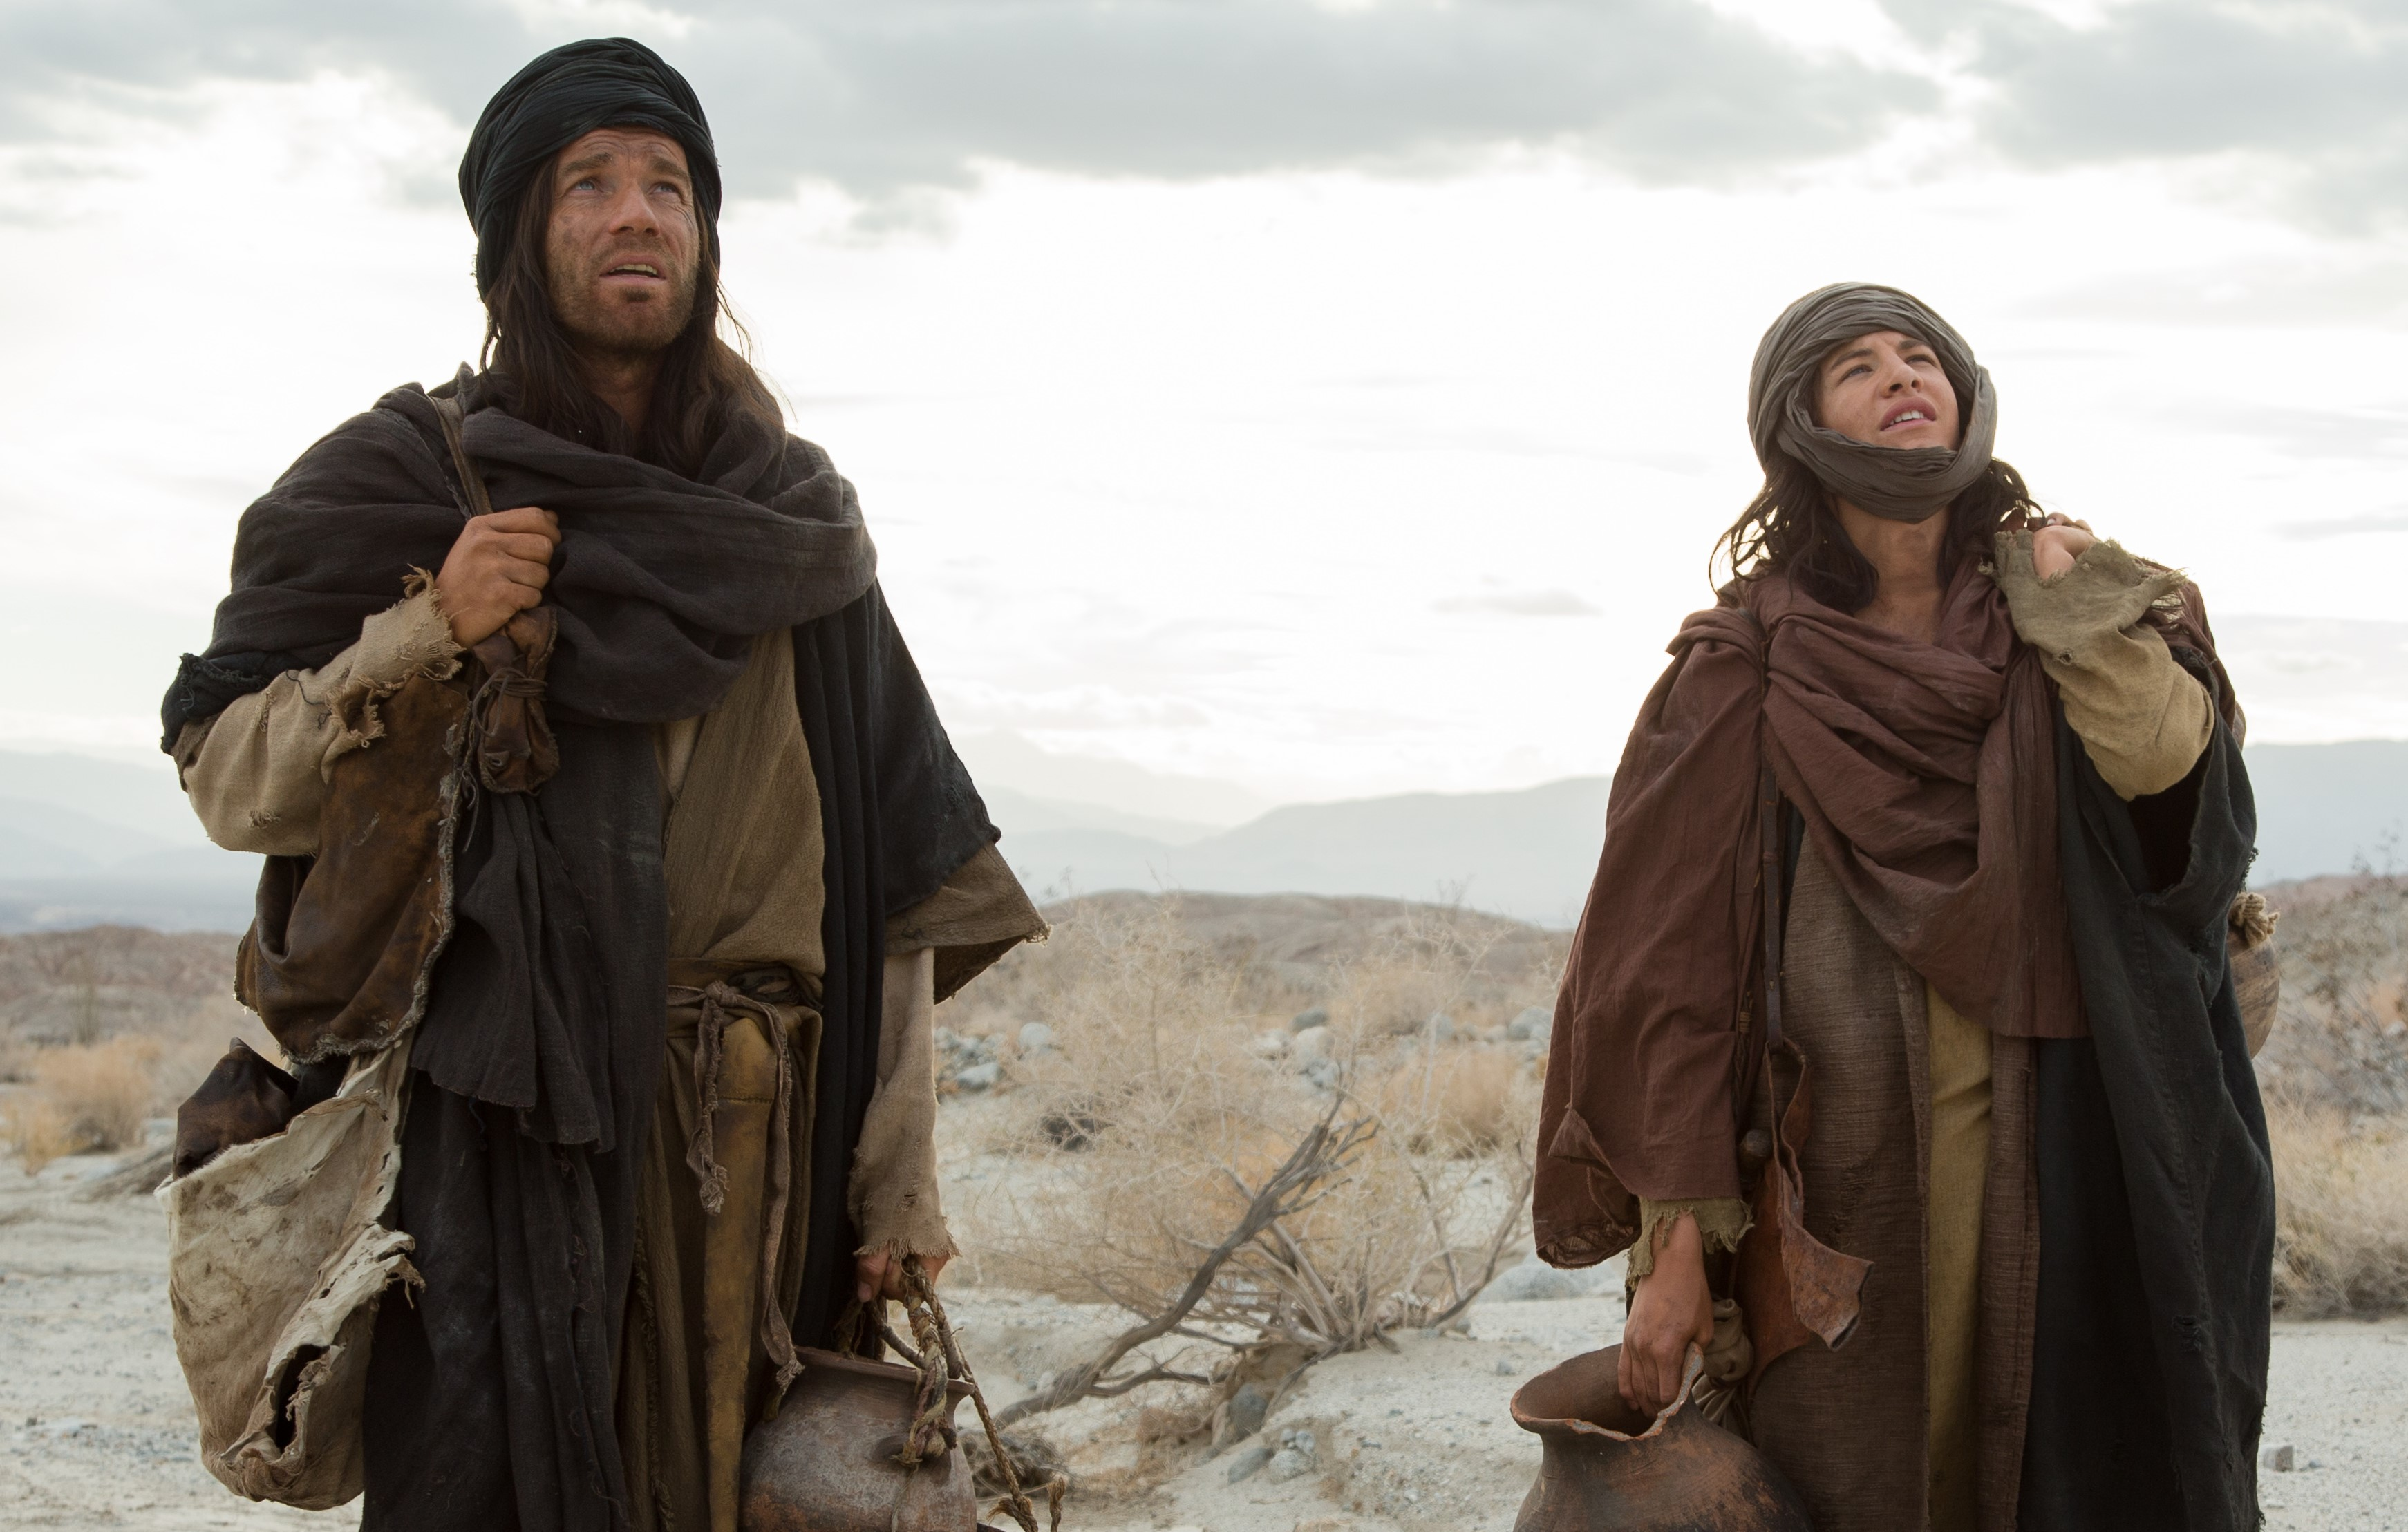 Last days in the desert film ciarán hinds and ayelet zurer